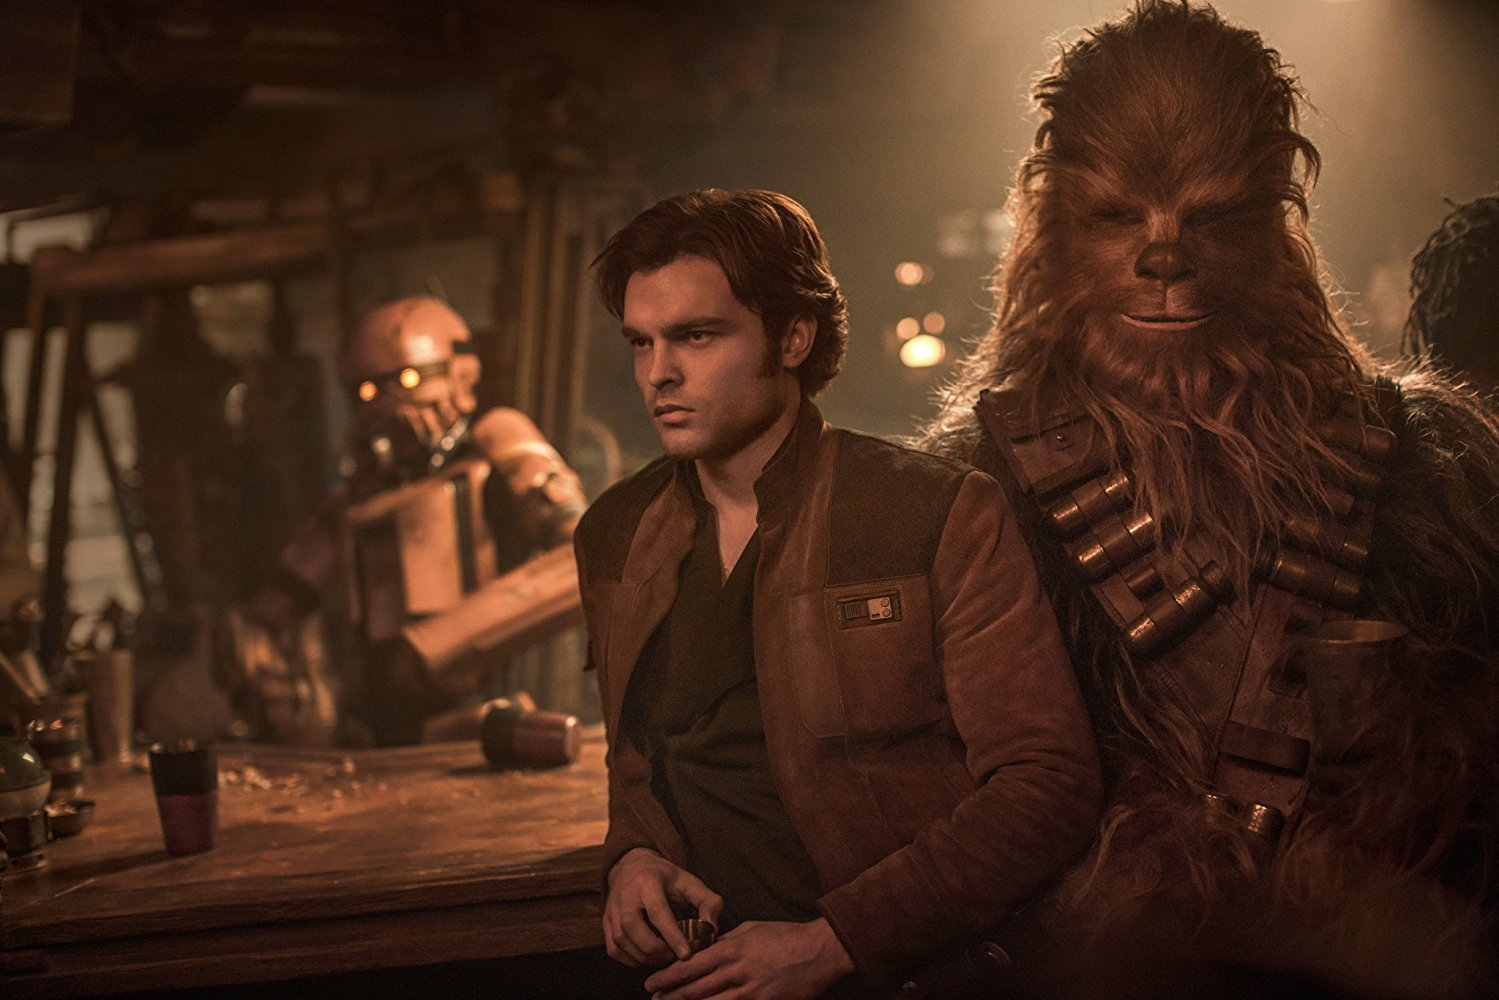 Solo: We asked for it, but do we really want it?